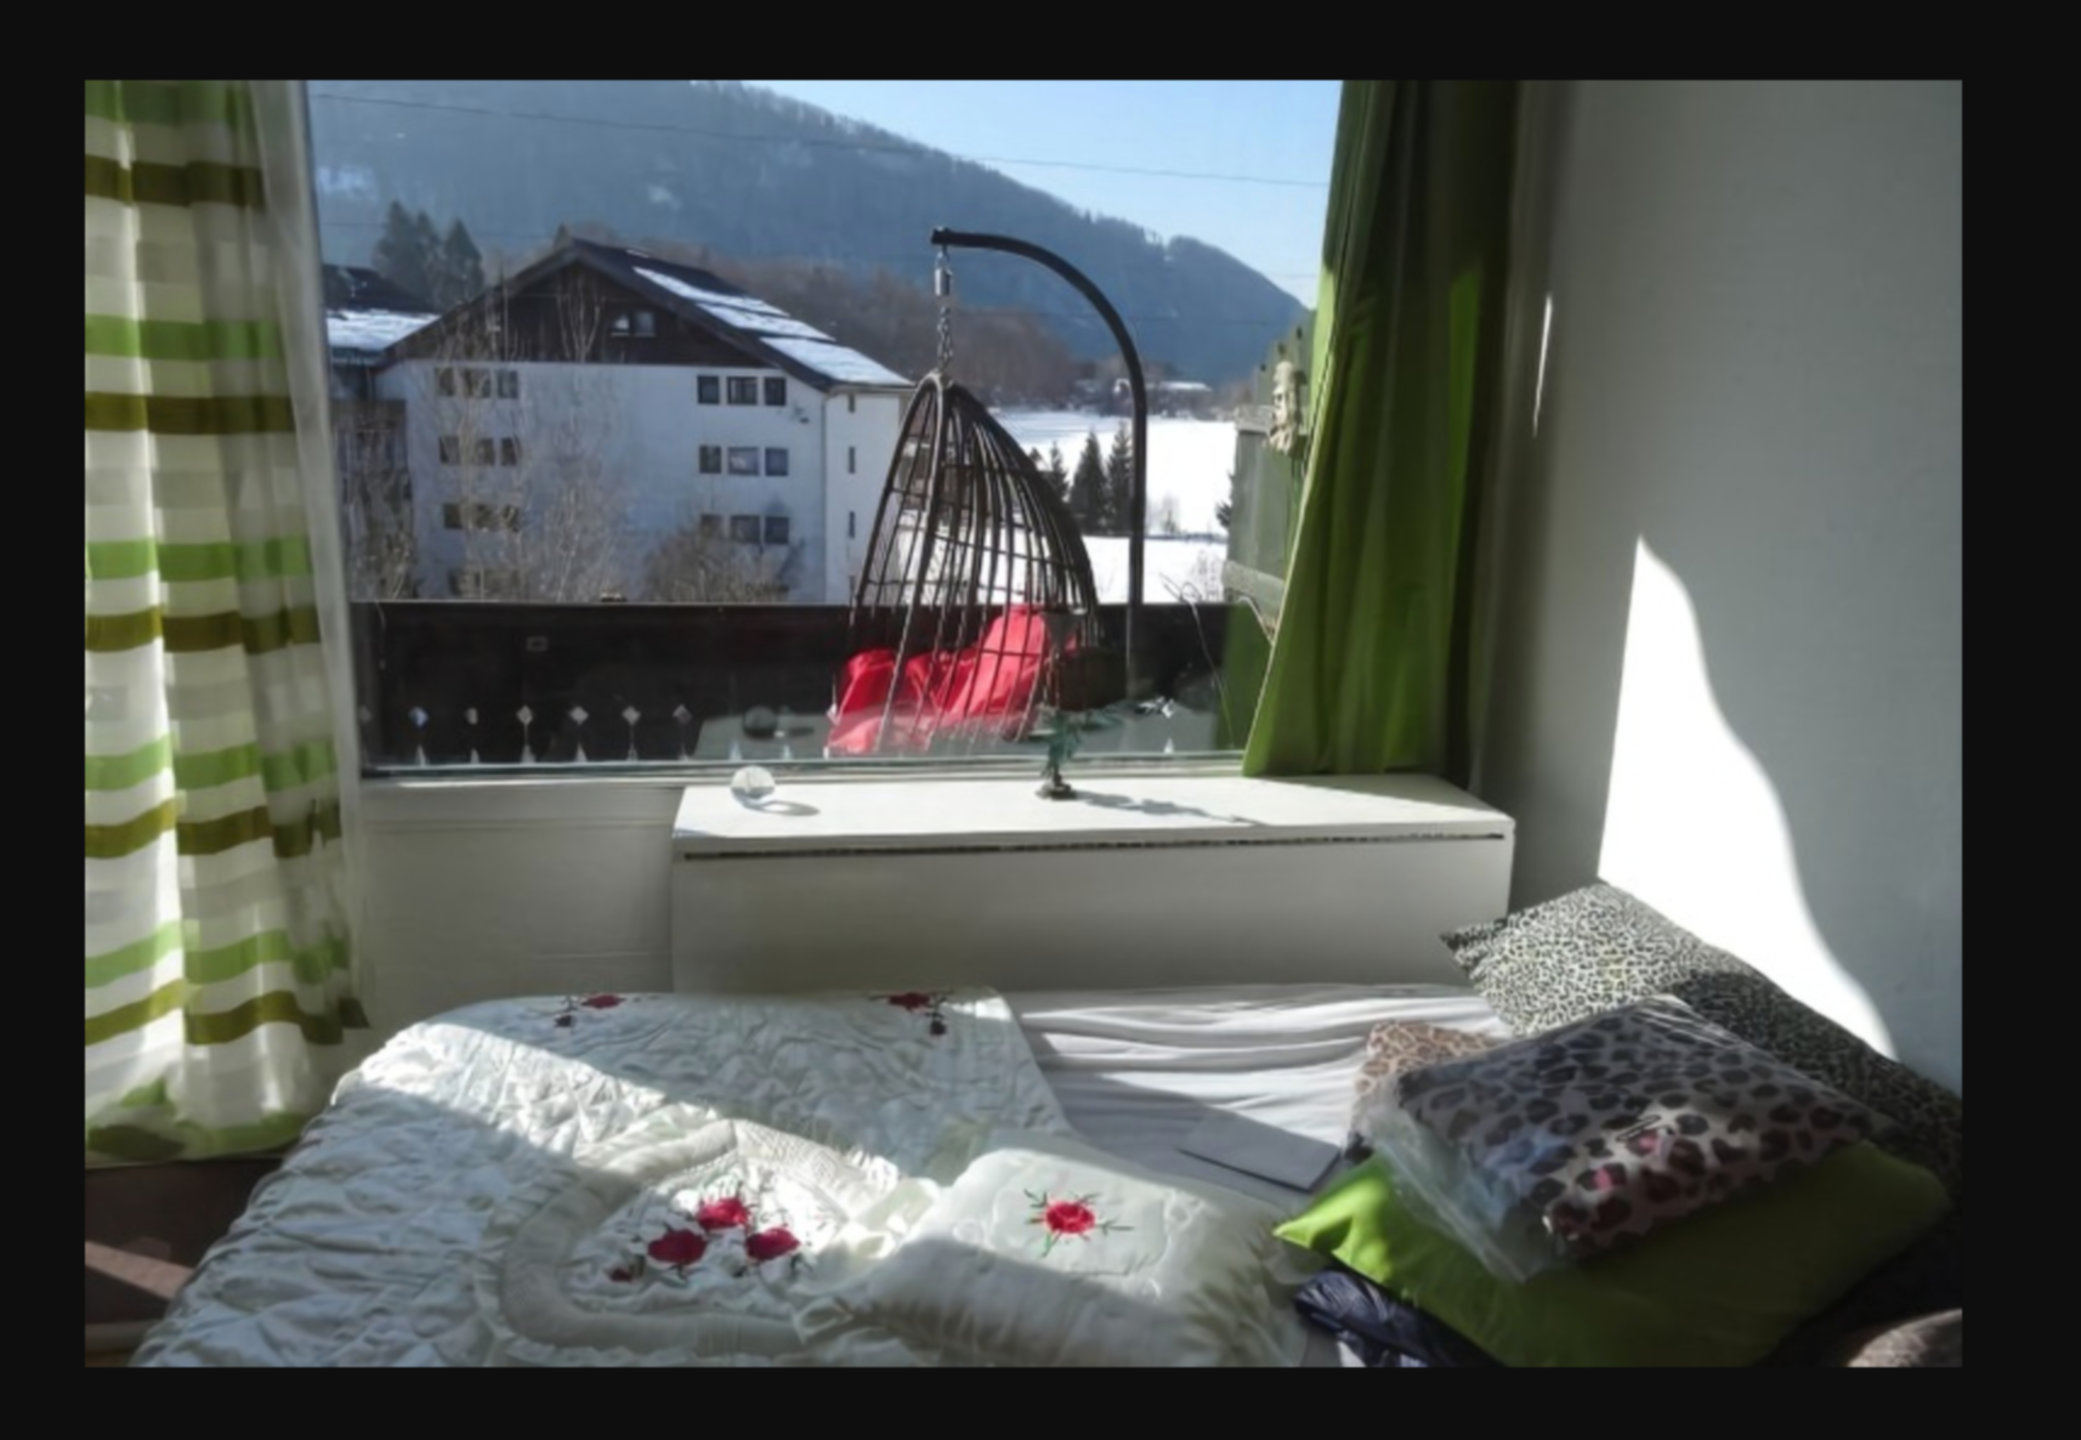 A bedroom with a bed and a window at 2-Zimmer am Nussensee mit Bergblick.